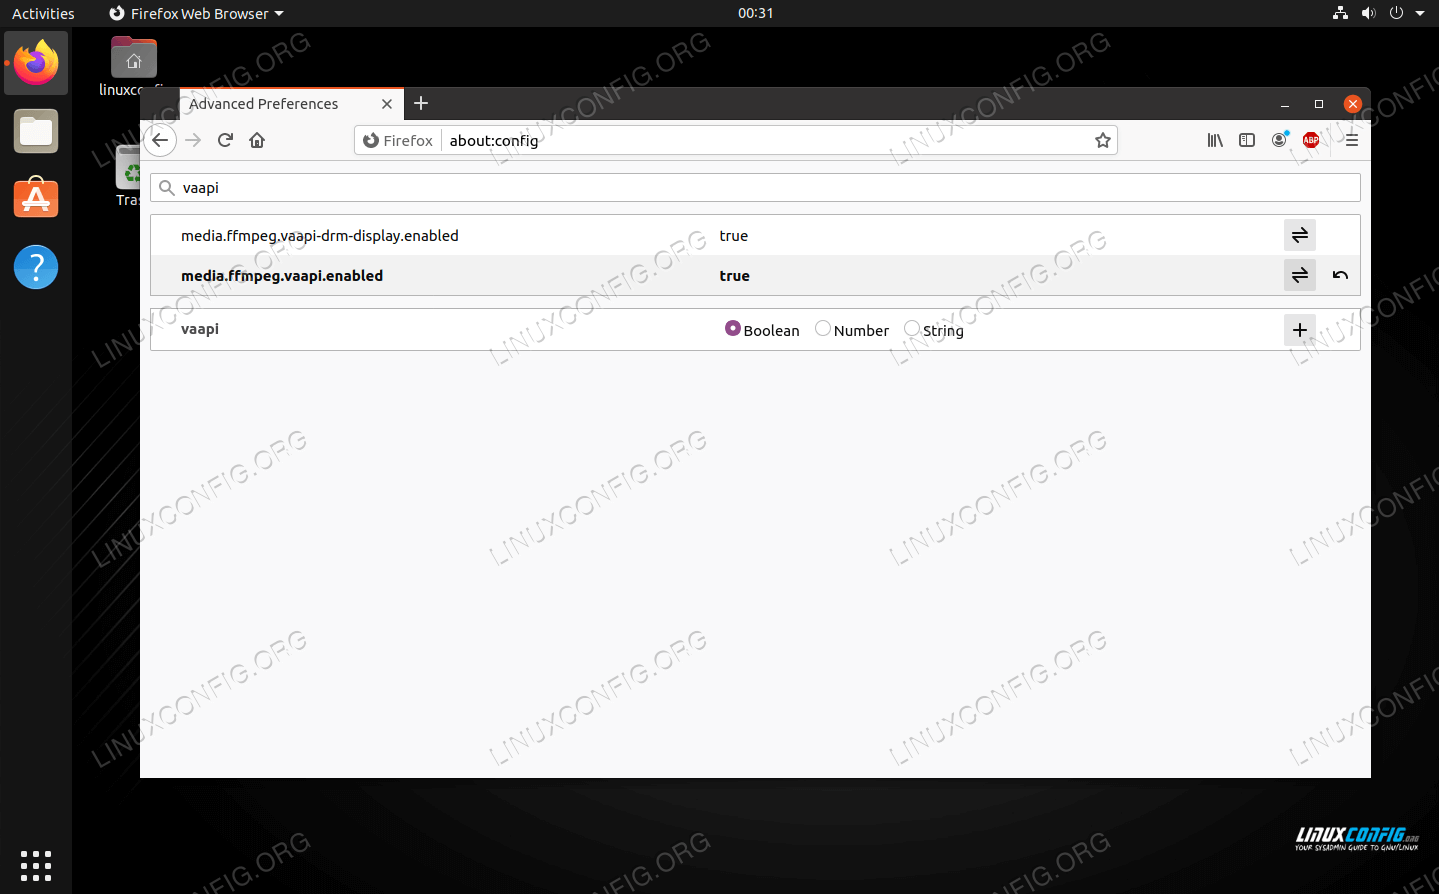 VA-API setting enabled in Firefox on Linux